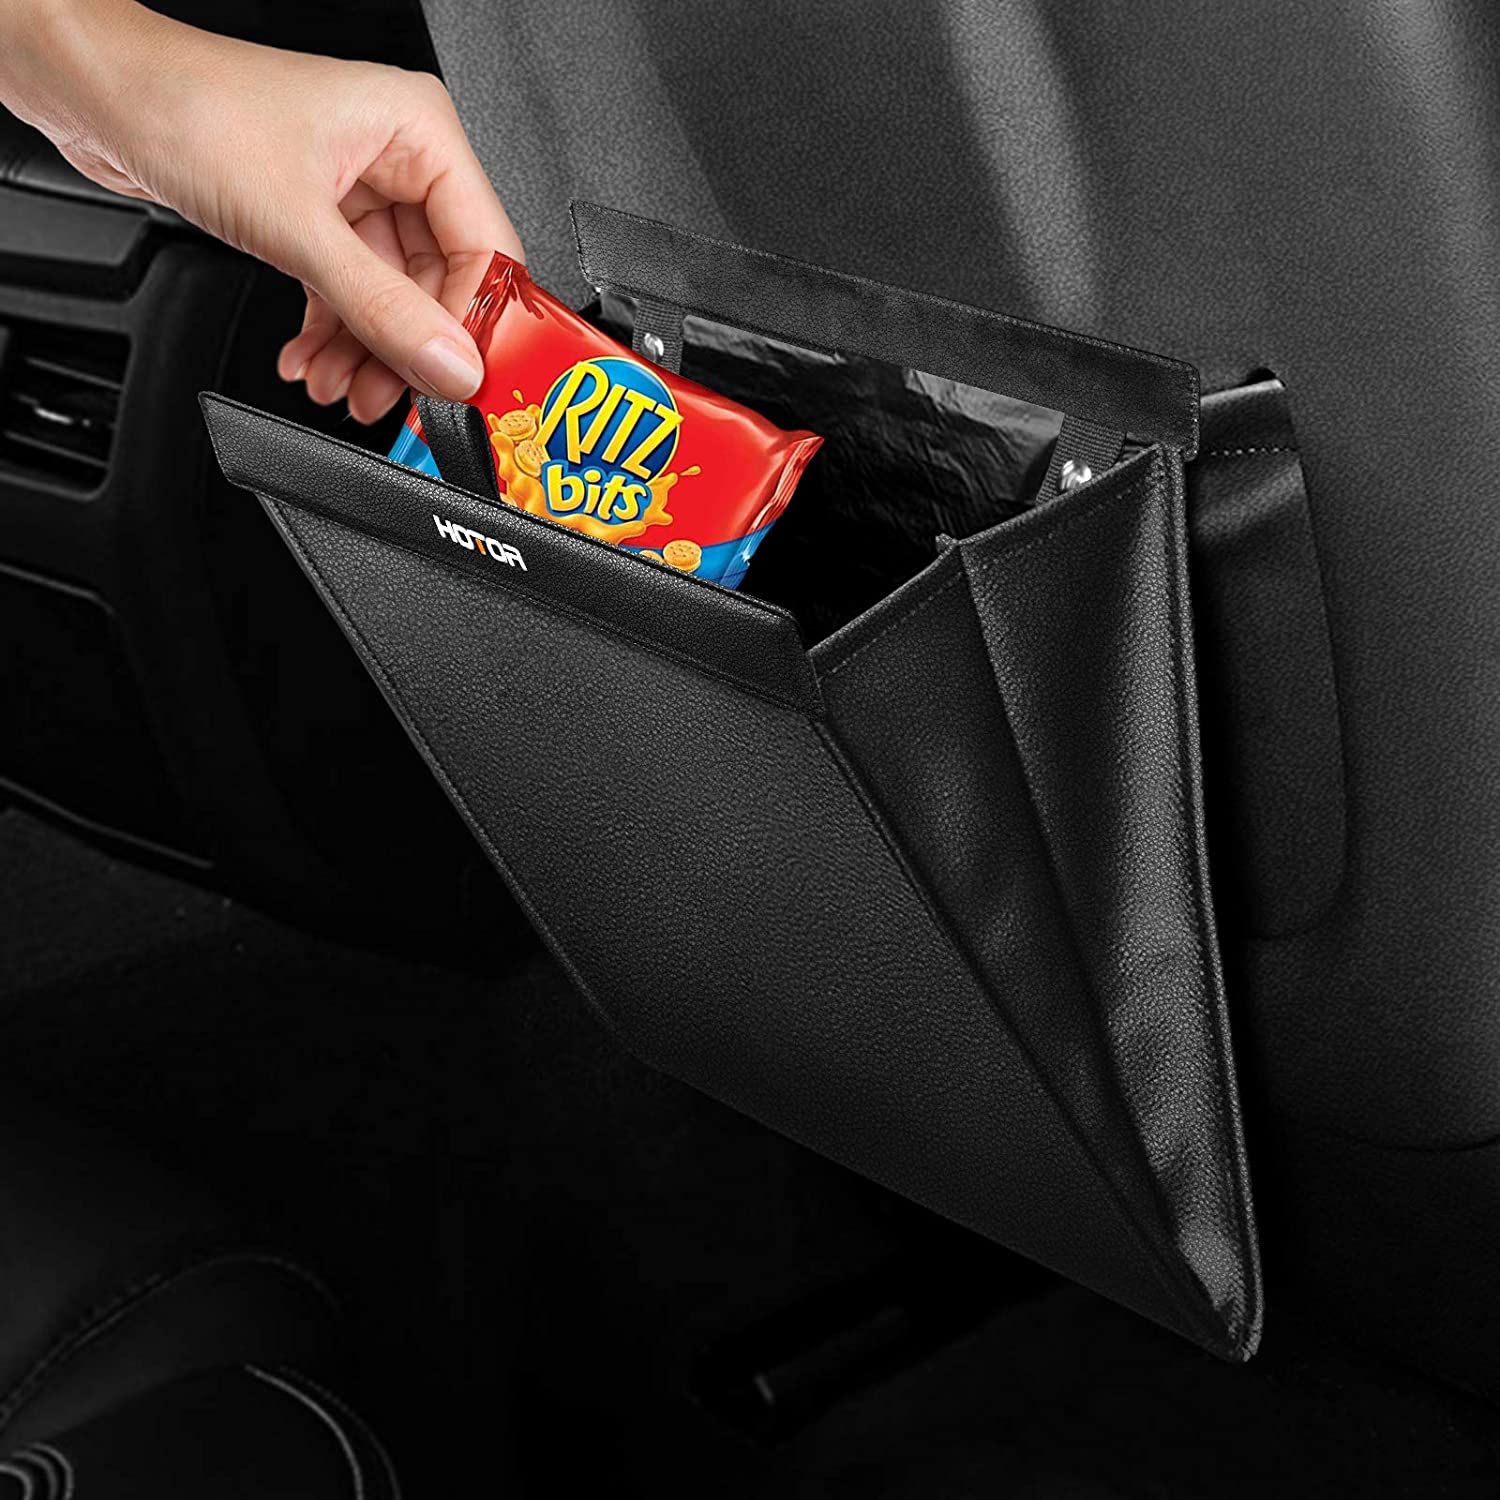 HOTOR Car Max 81% OFF Trash shipfree Can - Storing for Compact Organizing